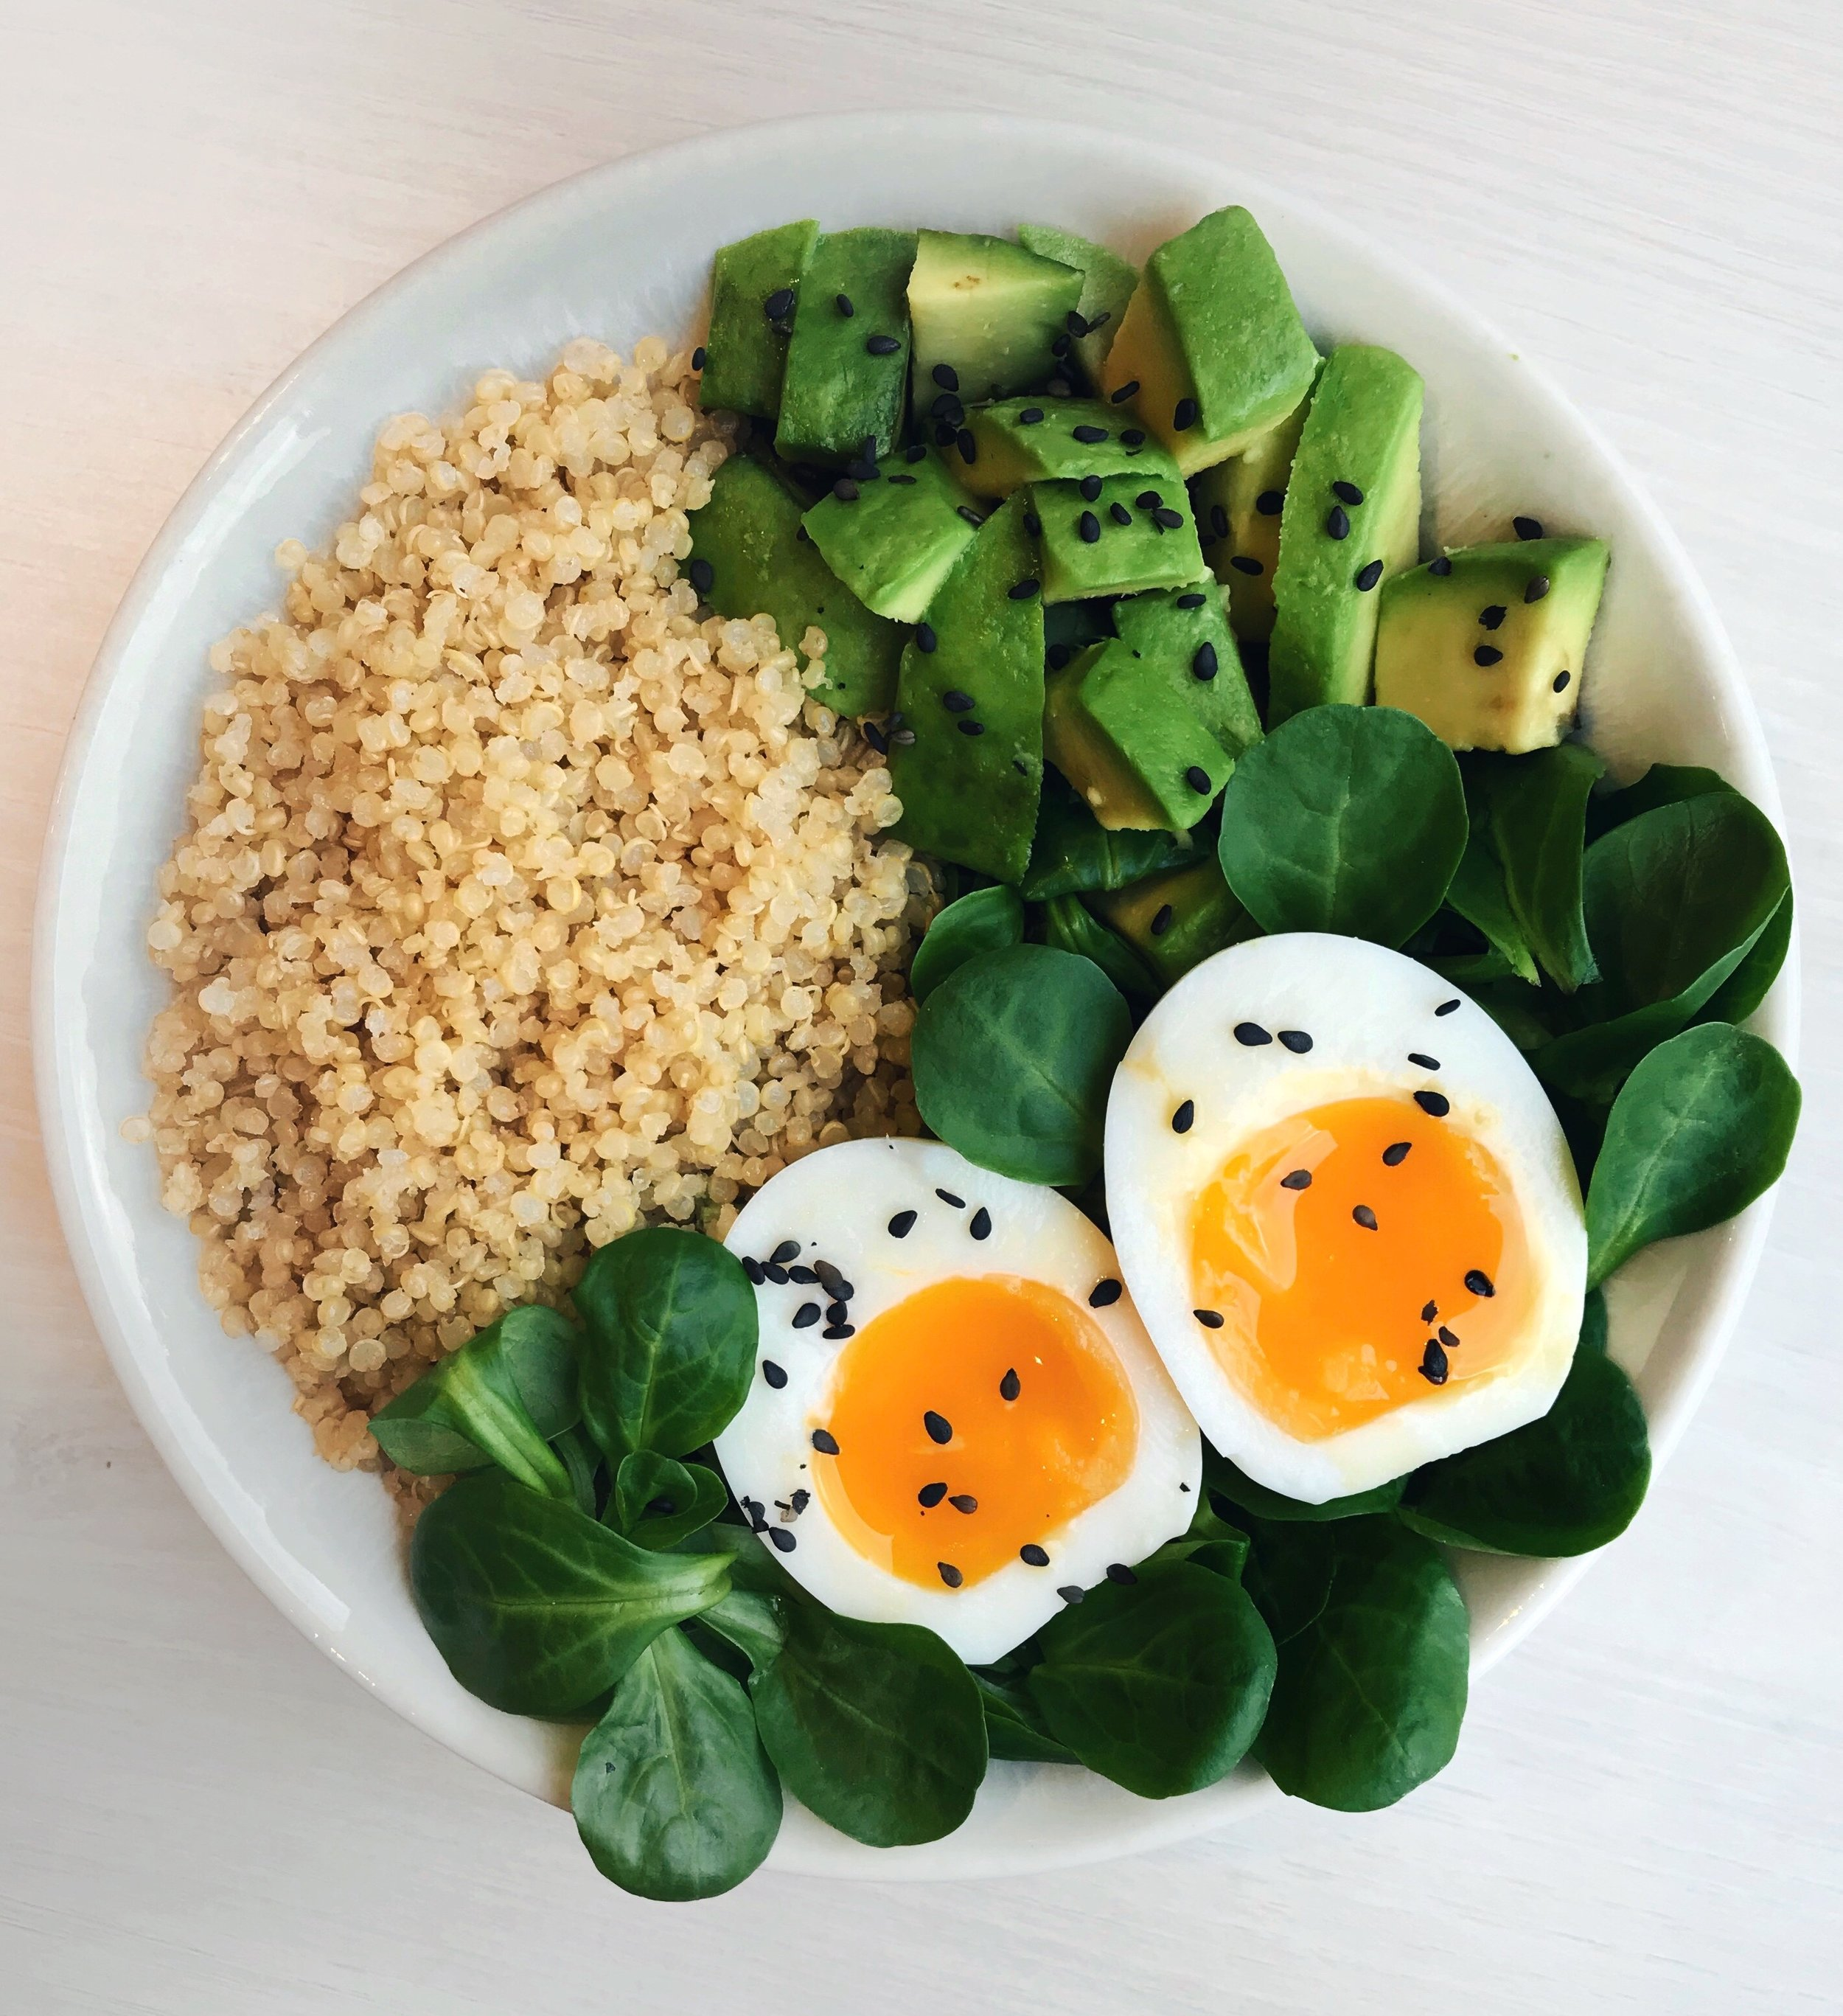 Quinoa, Avocado &Soft-boiled Egg Bowl - Salad leaves (seaoned with olive oil + lemon juice) topped with boiled white quinoa + soft-boiled egg (6min cooking) + black sesame seeds + avocado squares